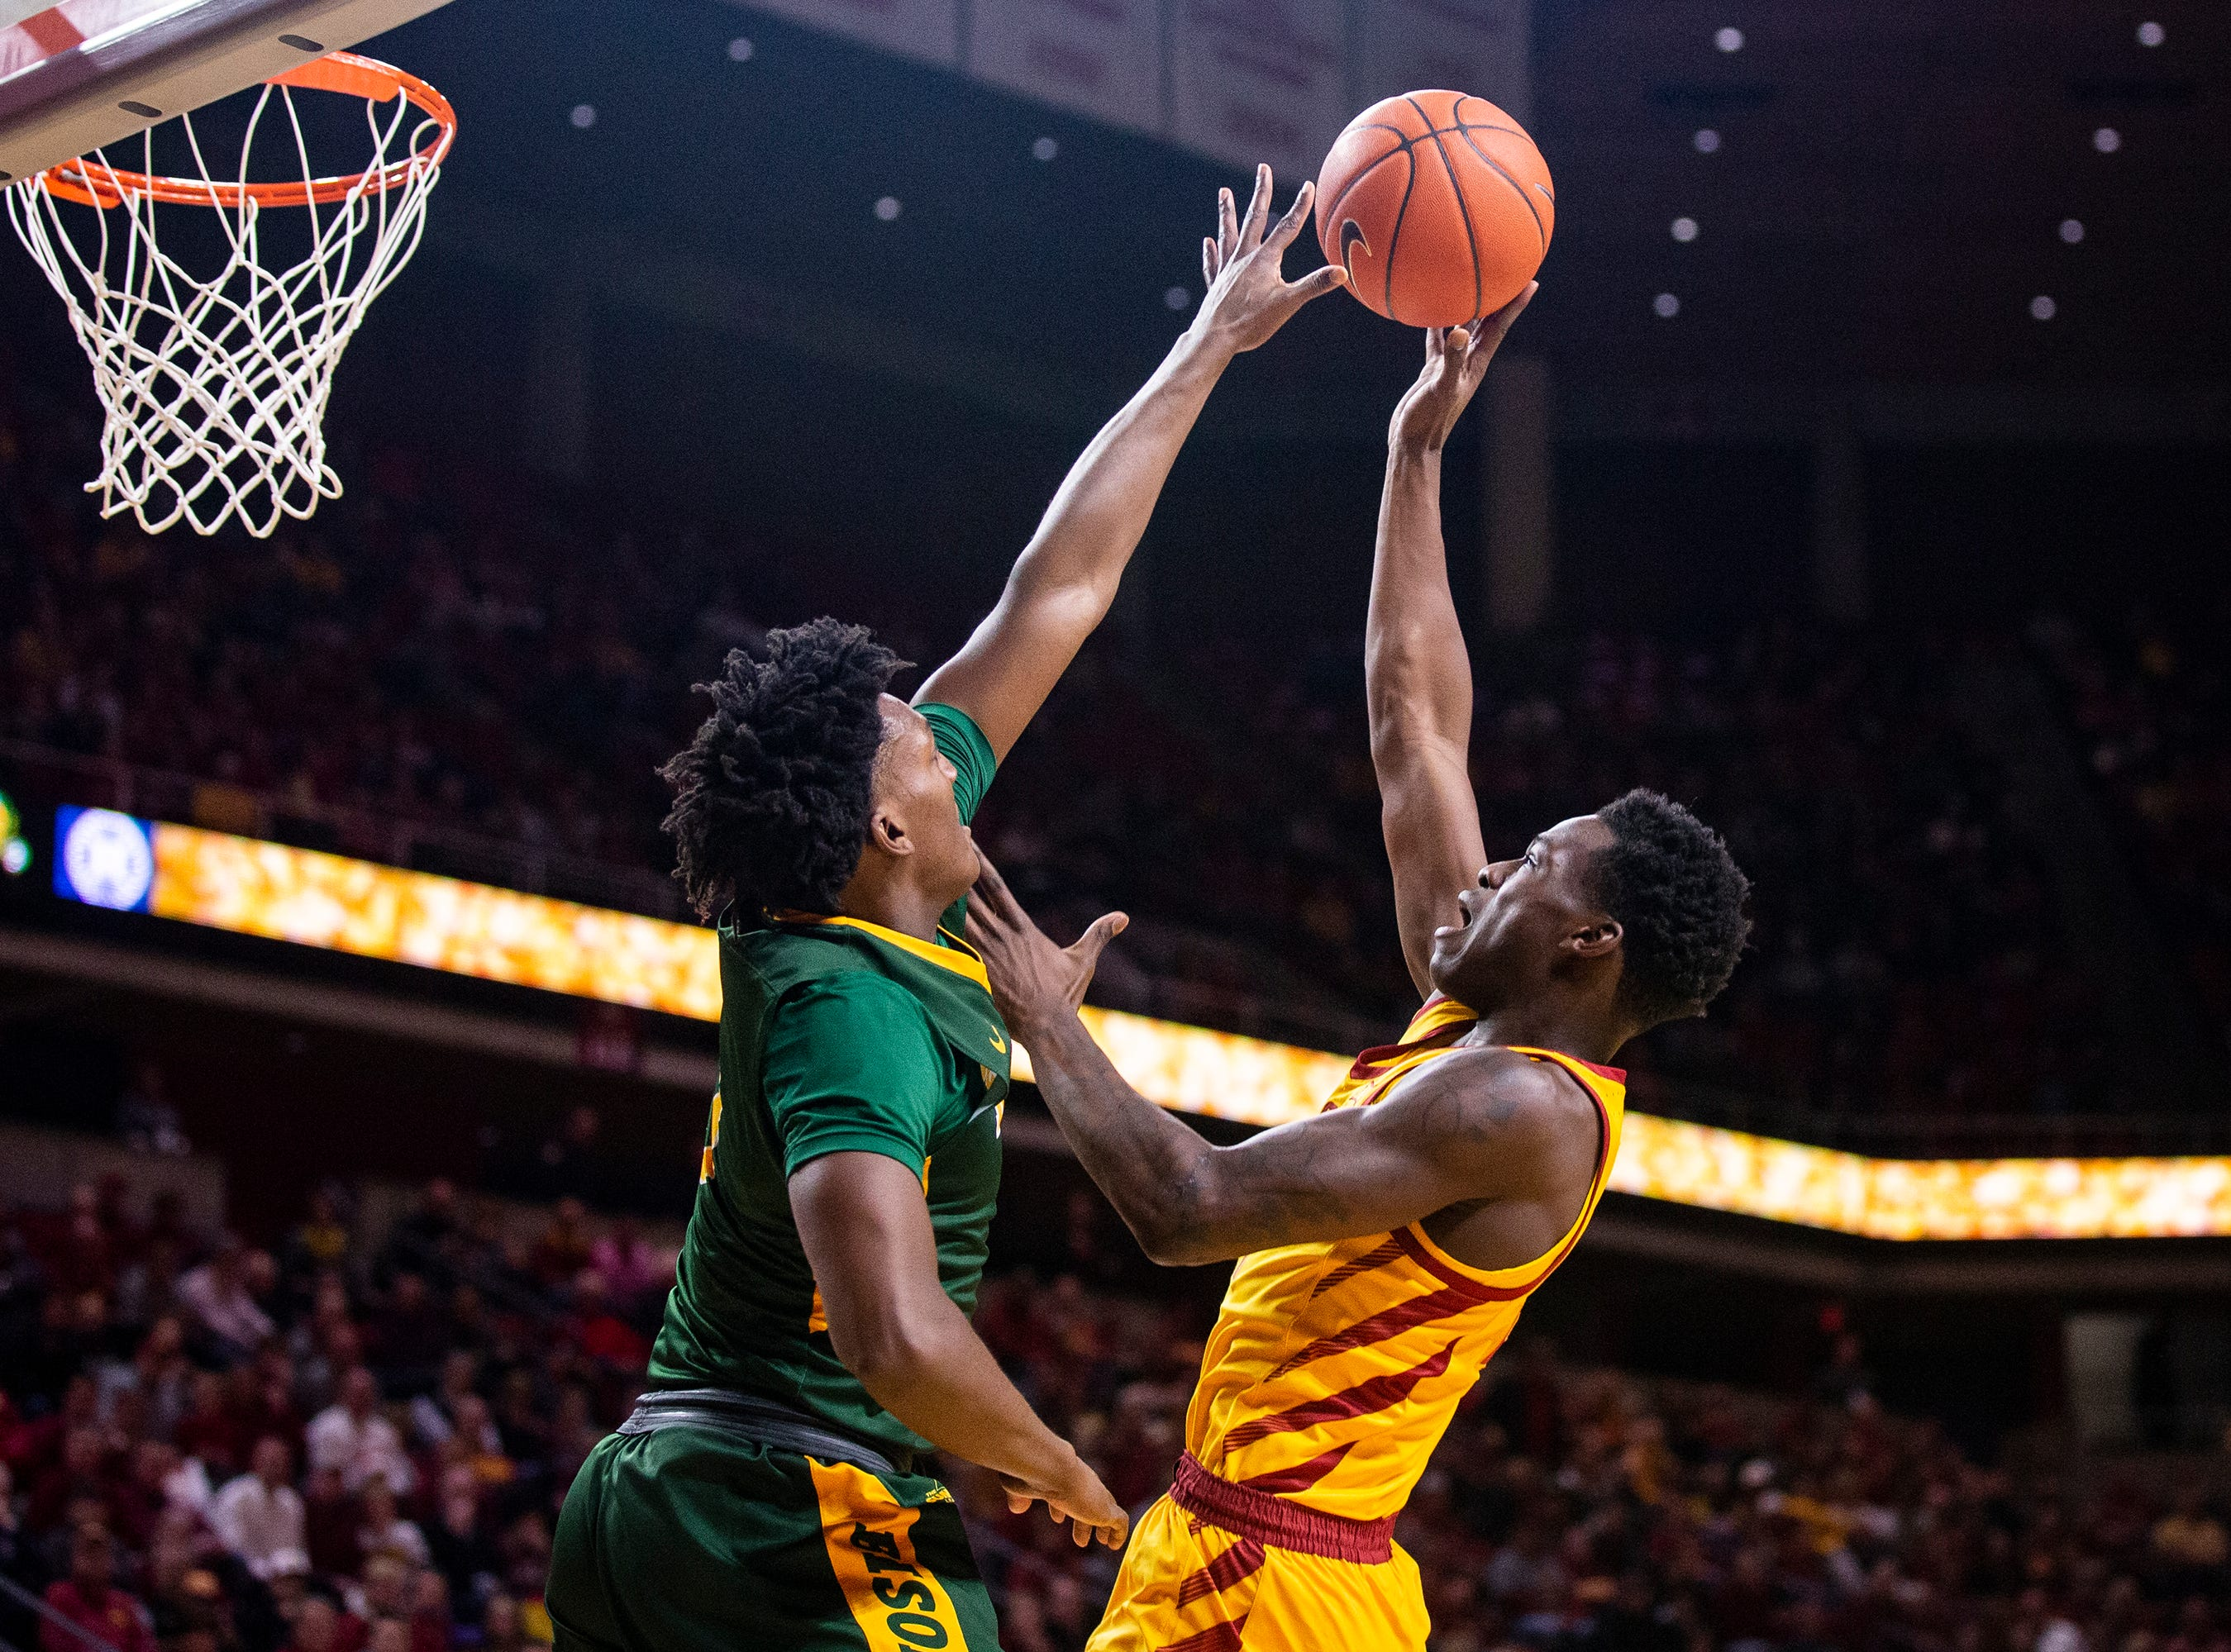 Iowa State's Terrence Lewis shoots the ball during the Iowa State men's basketball game against North Dakota State University on Monday, Dec. 3, 2018, in Hilton Coliseum.